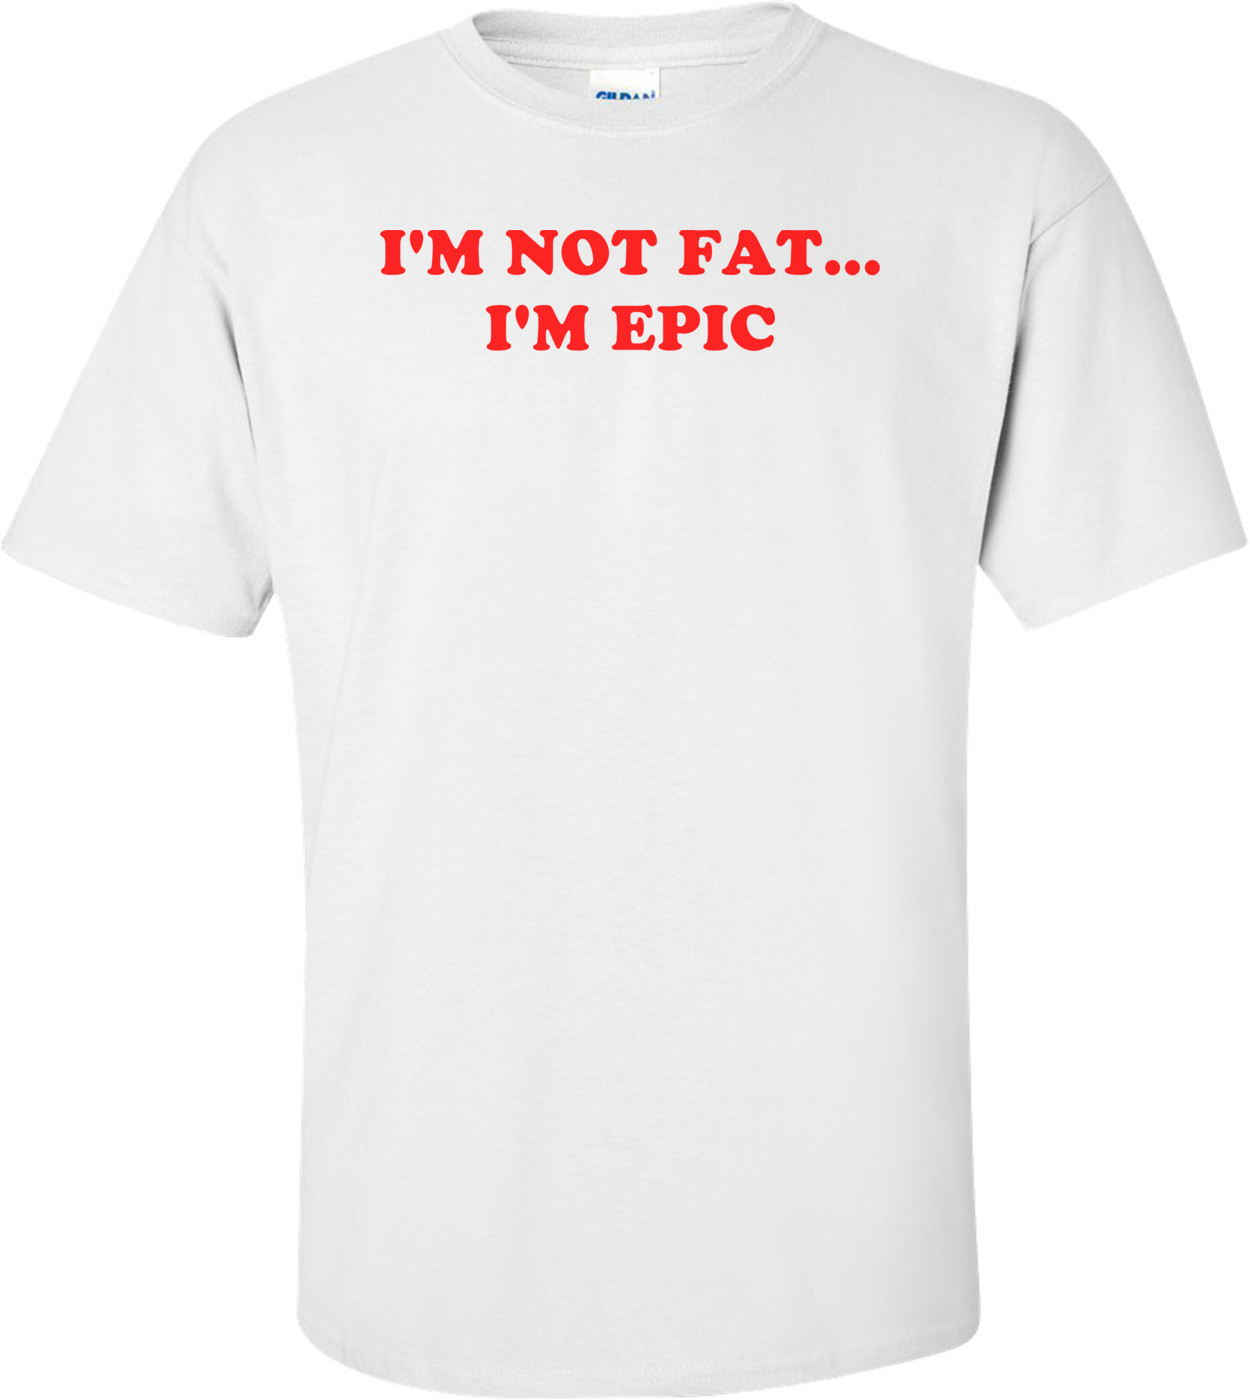 I'M NOT FAT... I'M EPIC Shirt